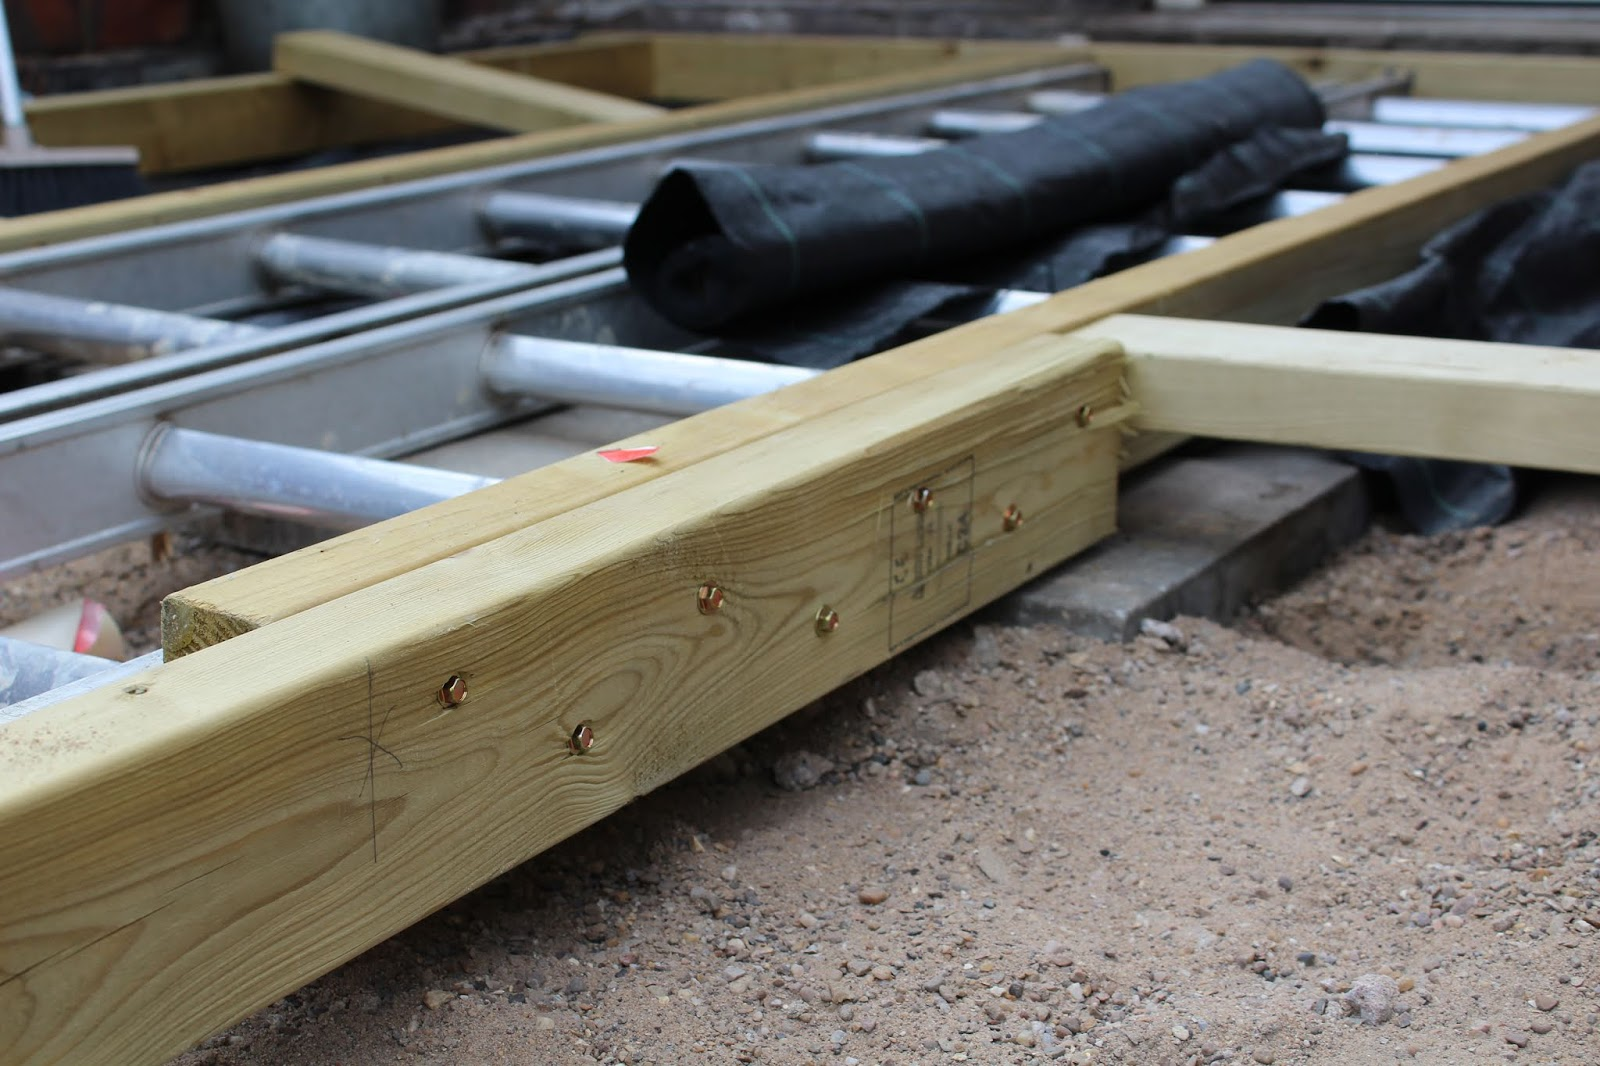 Joining timbers of decking